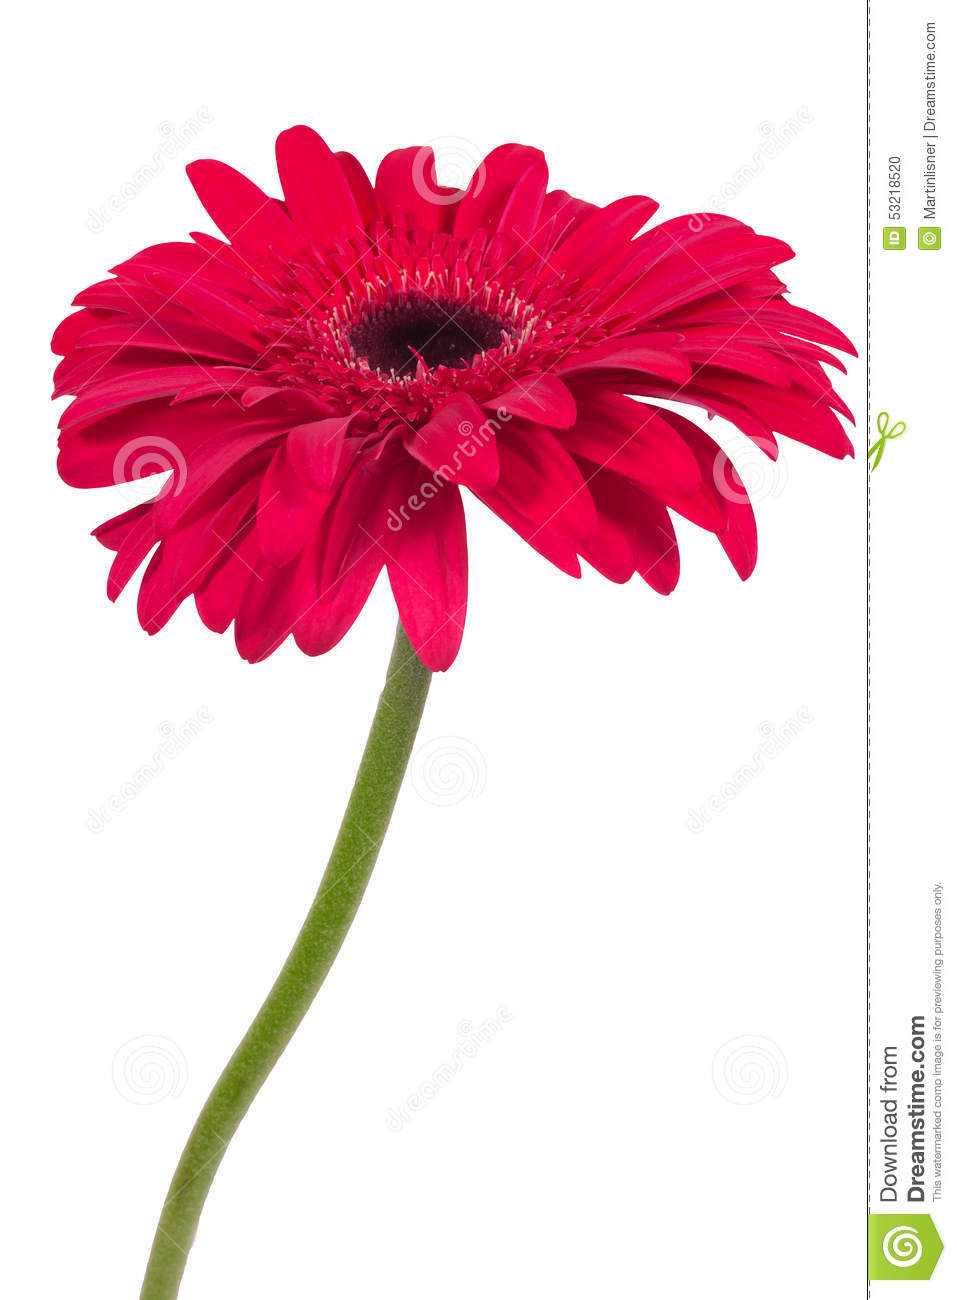 Beautiful pink gerbera flower isolated on white background